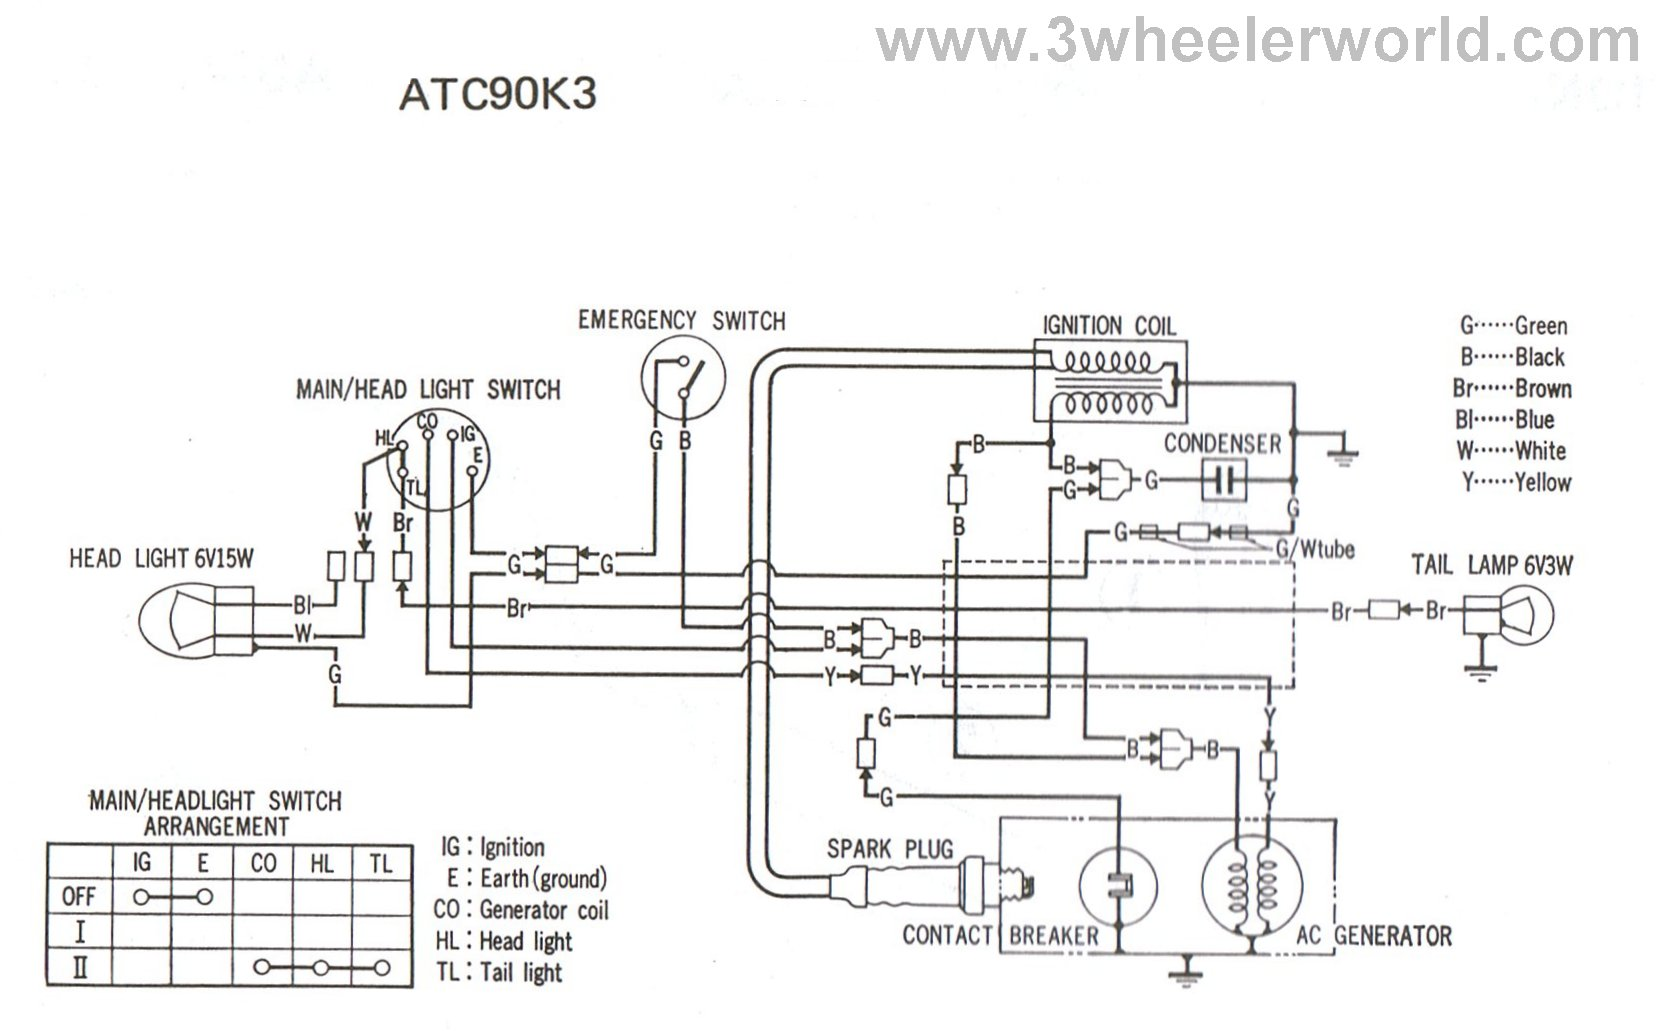 ATC90K3HM polaris predator 90 wiring diagram polaris 90 service manual 1995 polaris scrambler wiring diagram at fashall.co